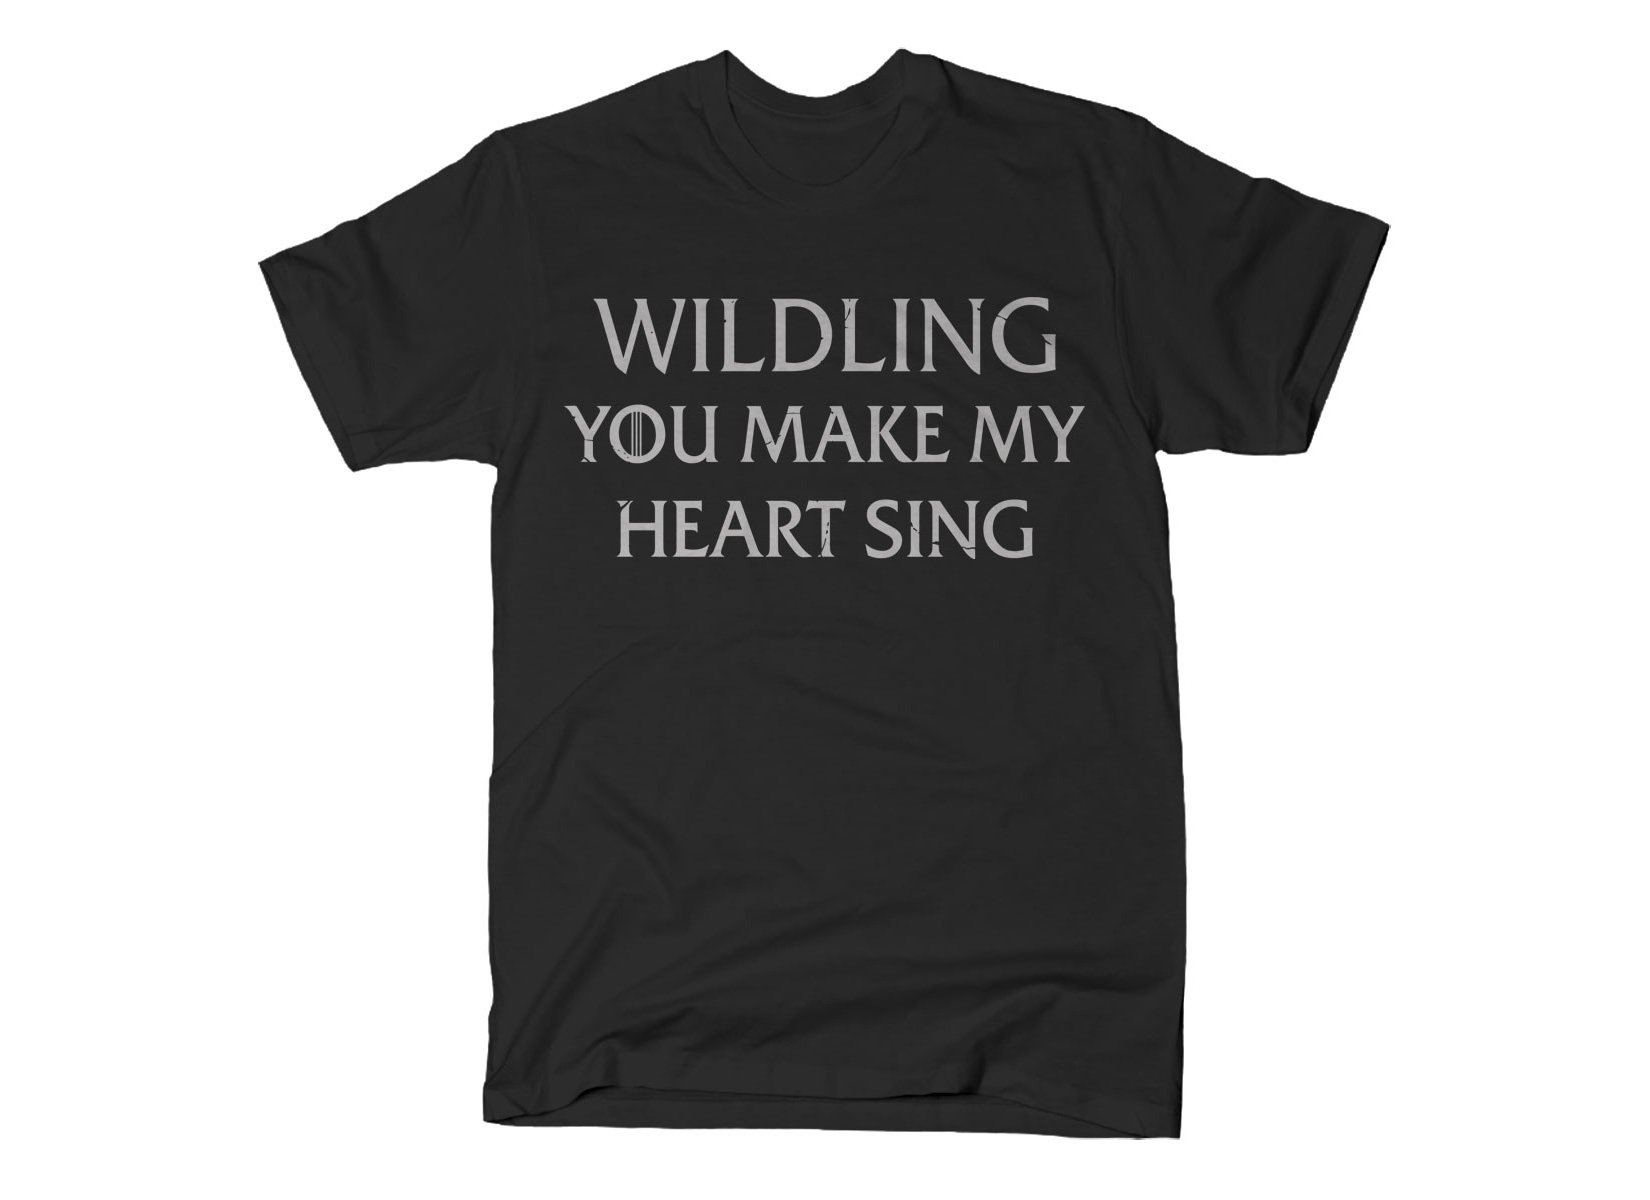 Wildling You Make My Heart Sing – Game of Thrones T-Shirts